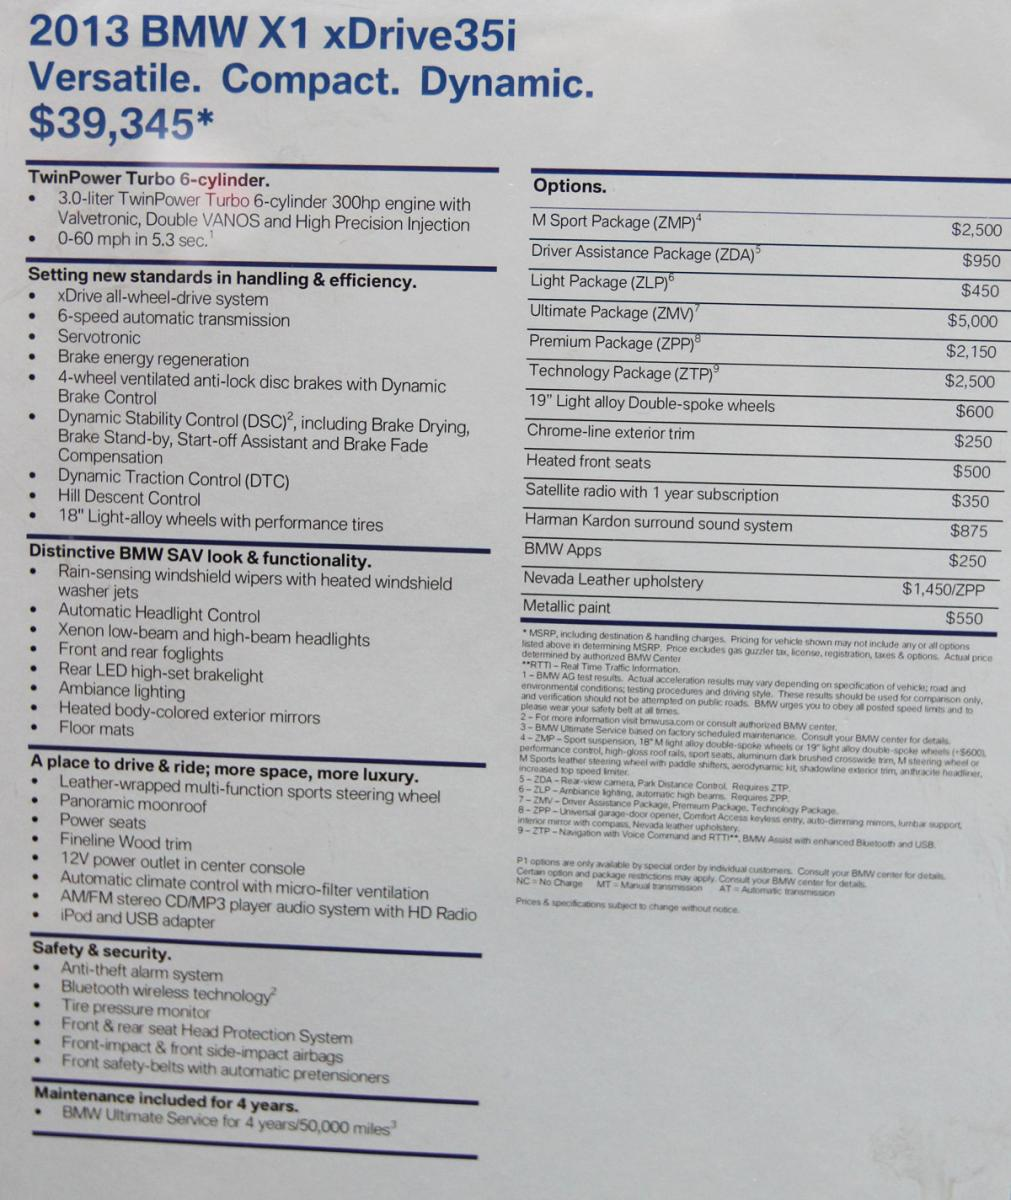 Full 2013 X1 Options List And Pricing (US